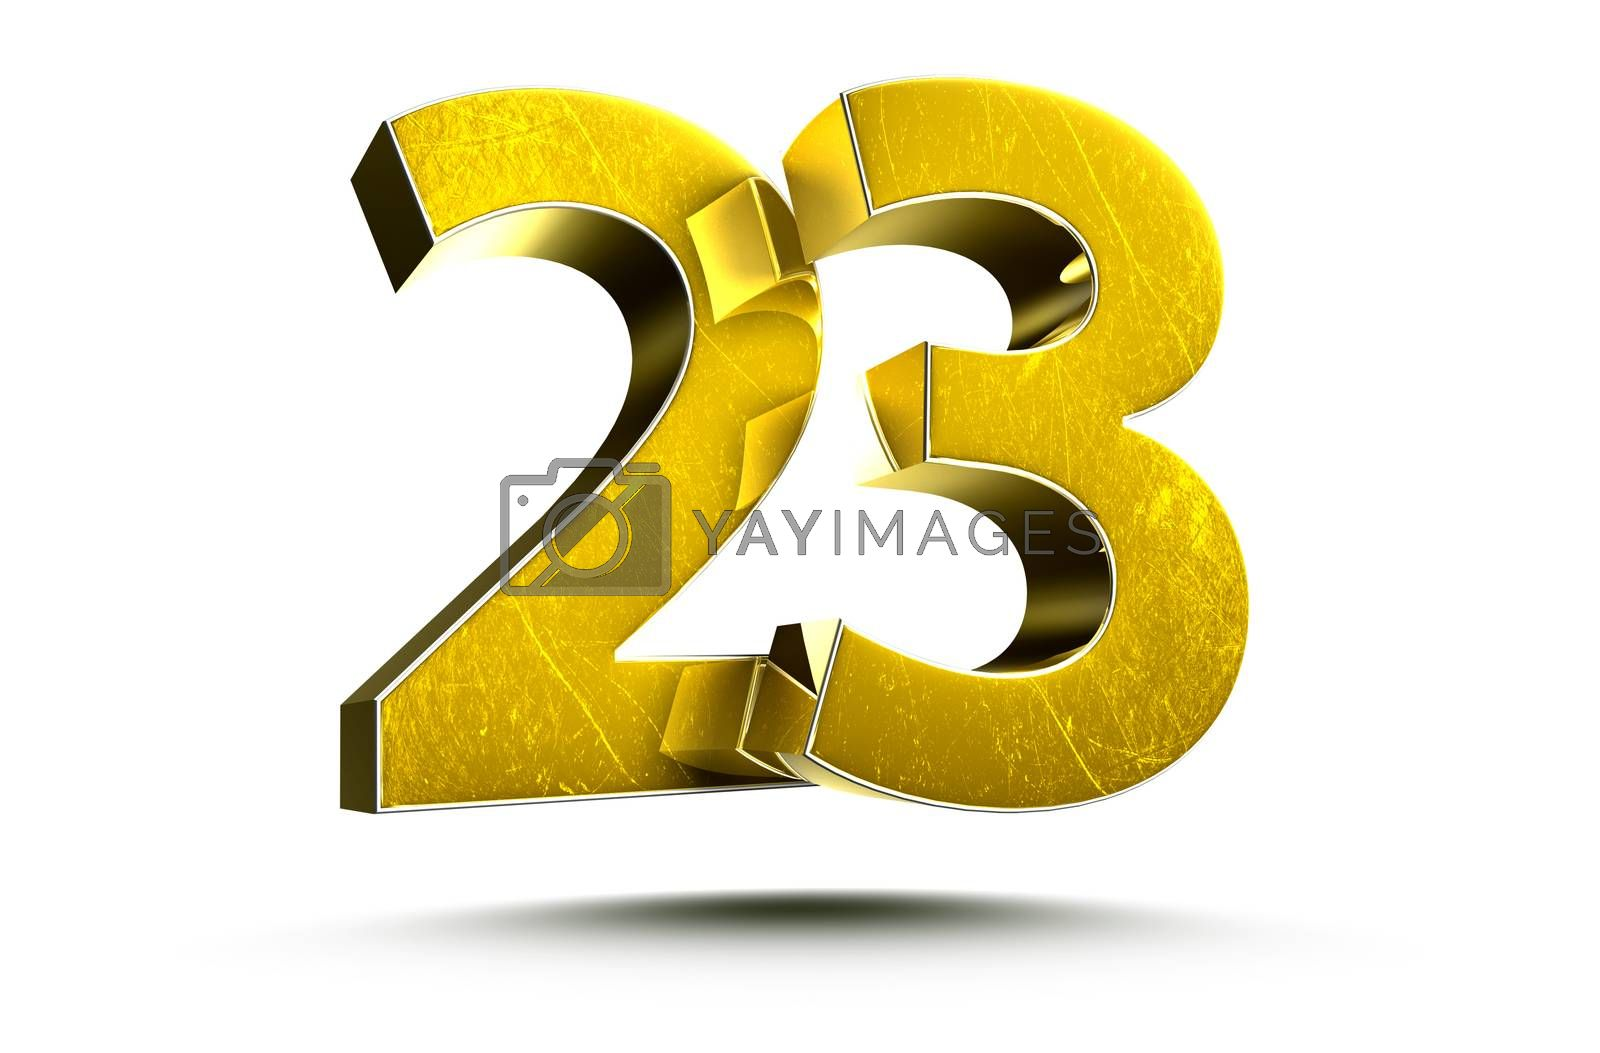 3D illustration Golden number 23 isolated on a white background.(with Clipping Path).